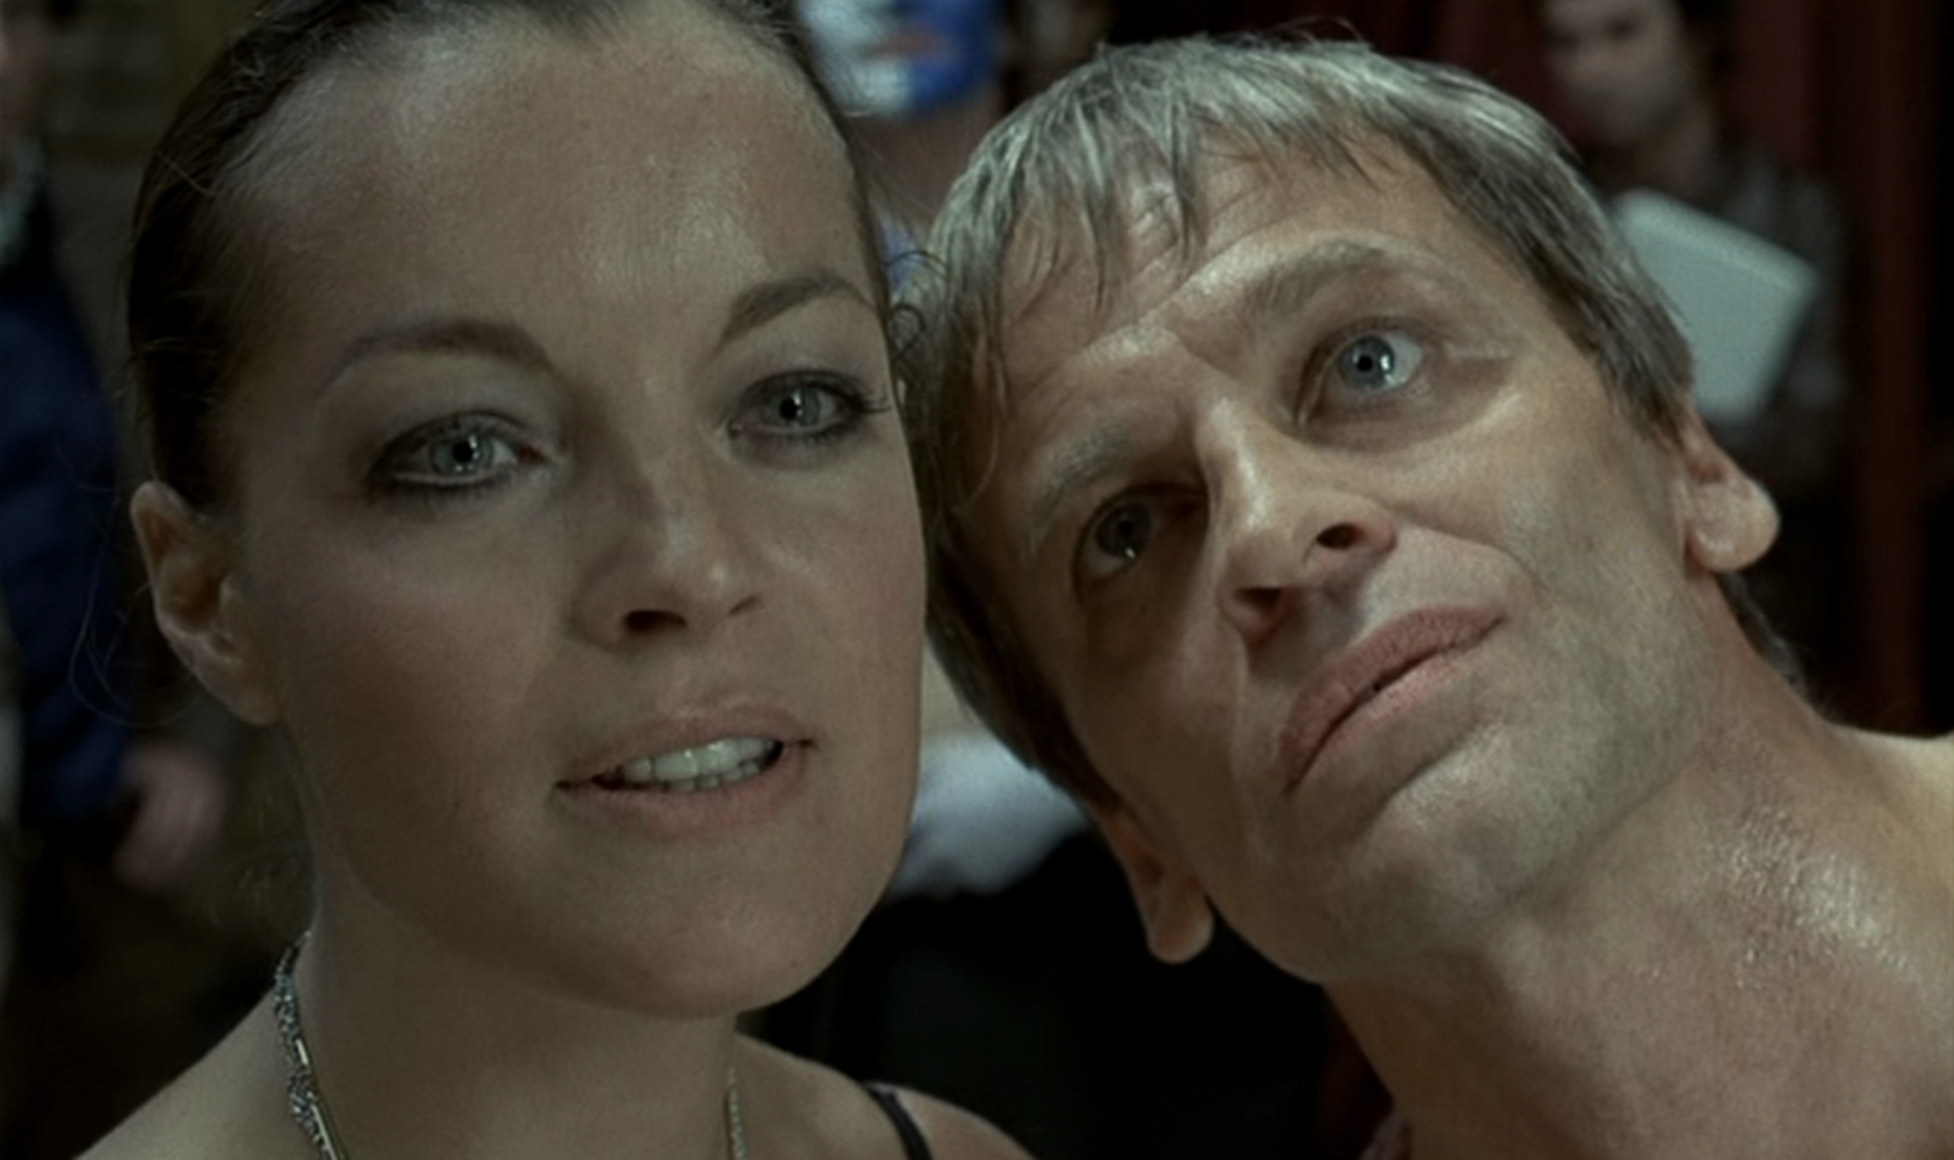 Outsiders, Shamans, and Devils, Part 1: A Discussion of Central European New Wave Cinema with Daniel Bird